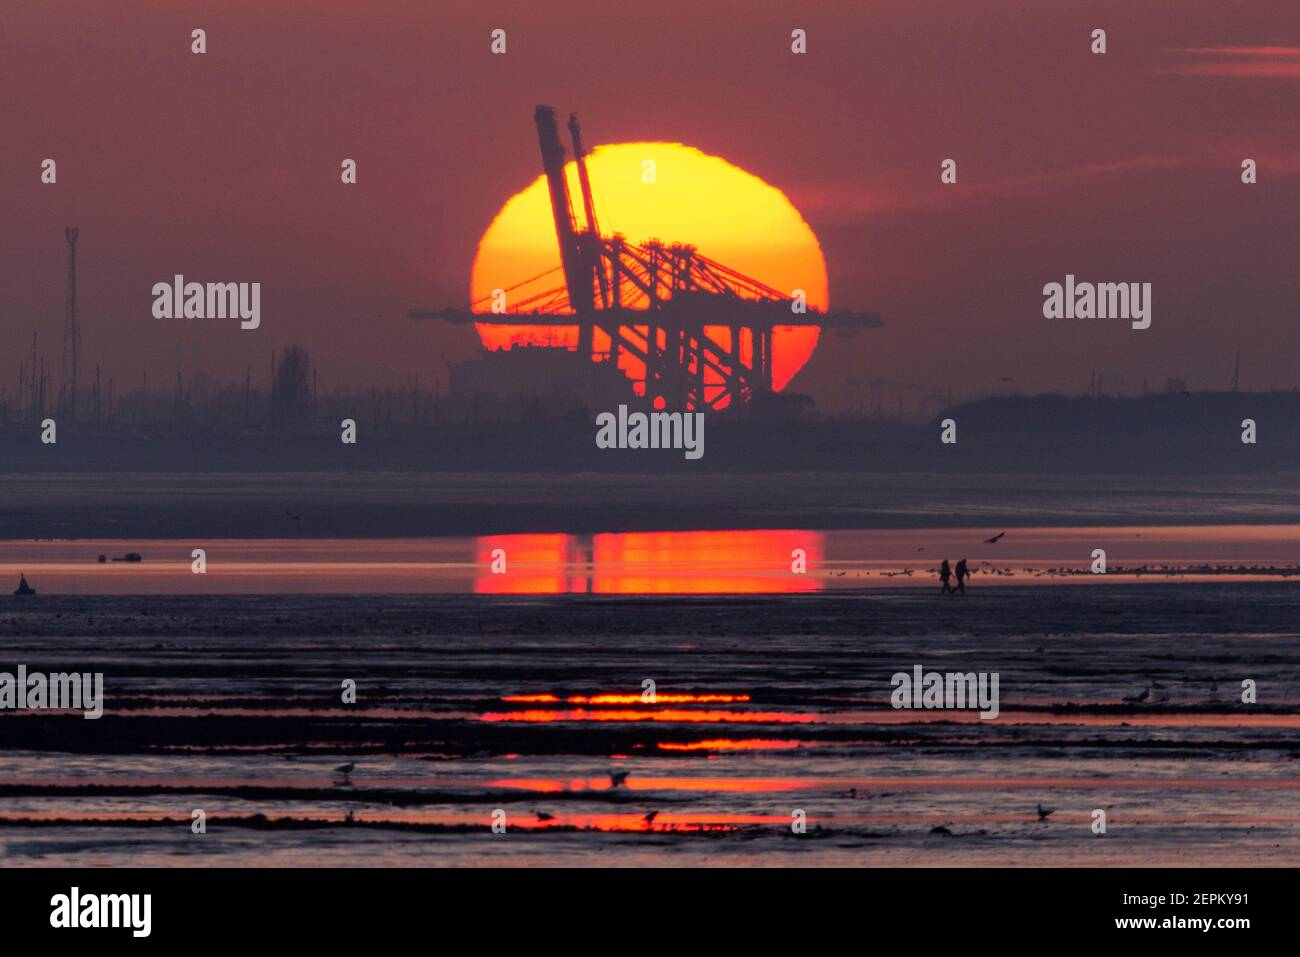 sun-setting-behind-dp-world-london-gateway-port-cranes-at-stanford-le-hope-on-the-thames-estuary-while-two-people-walk-back-to-shore-at-low-tide-2EPKY91.jpg